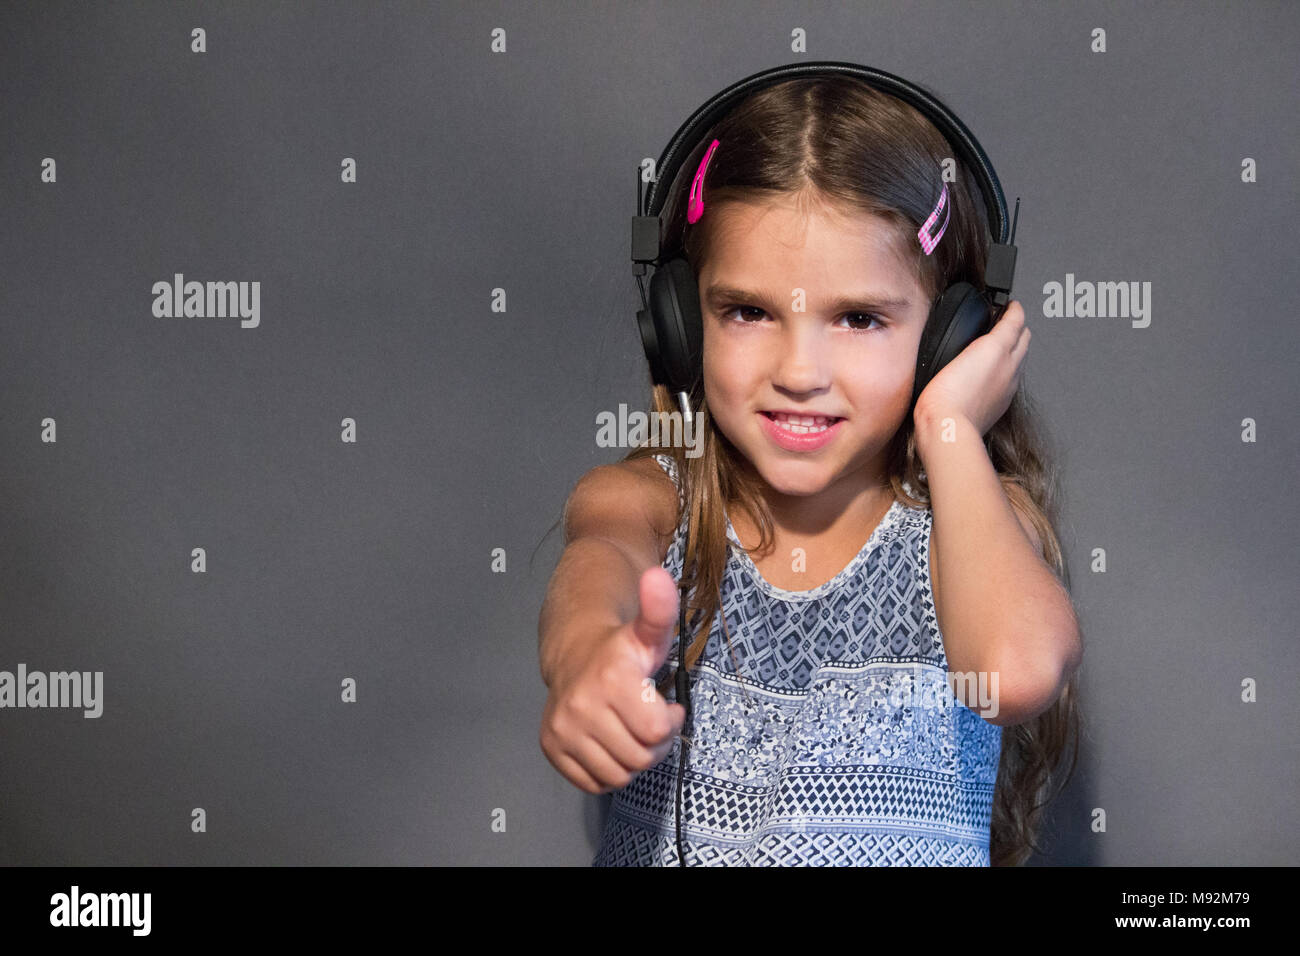 girl music agree thumb up Stock Photo